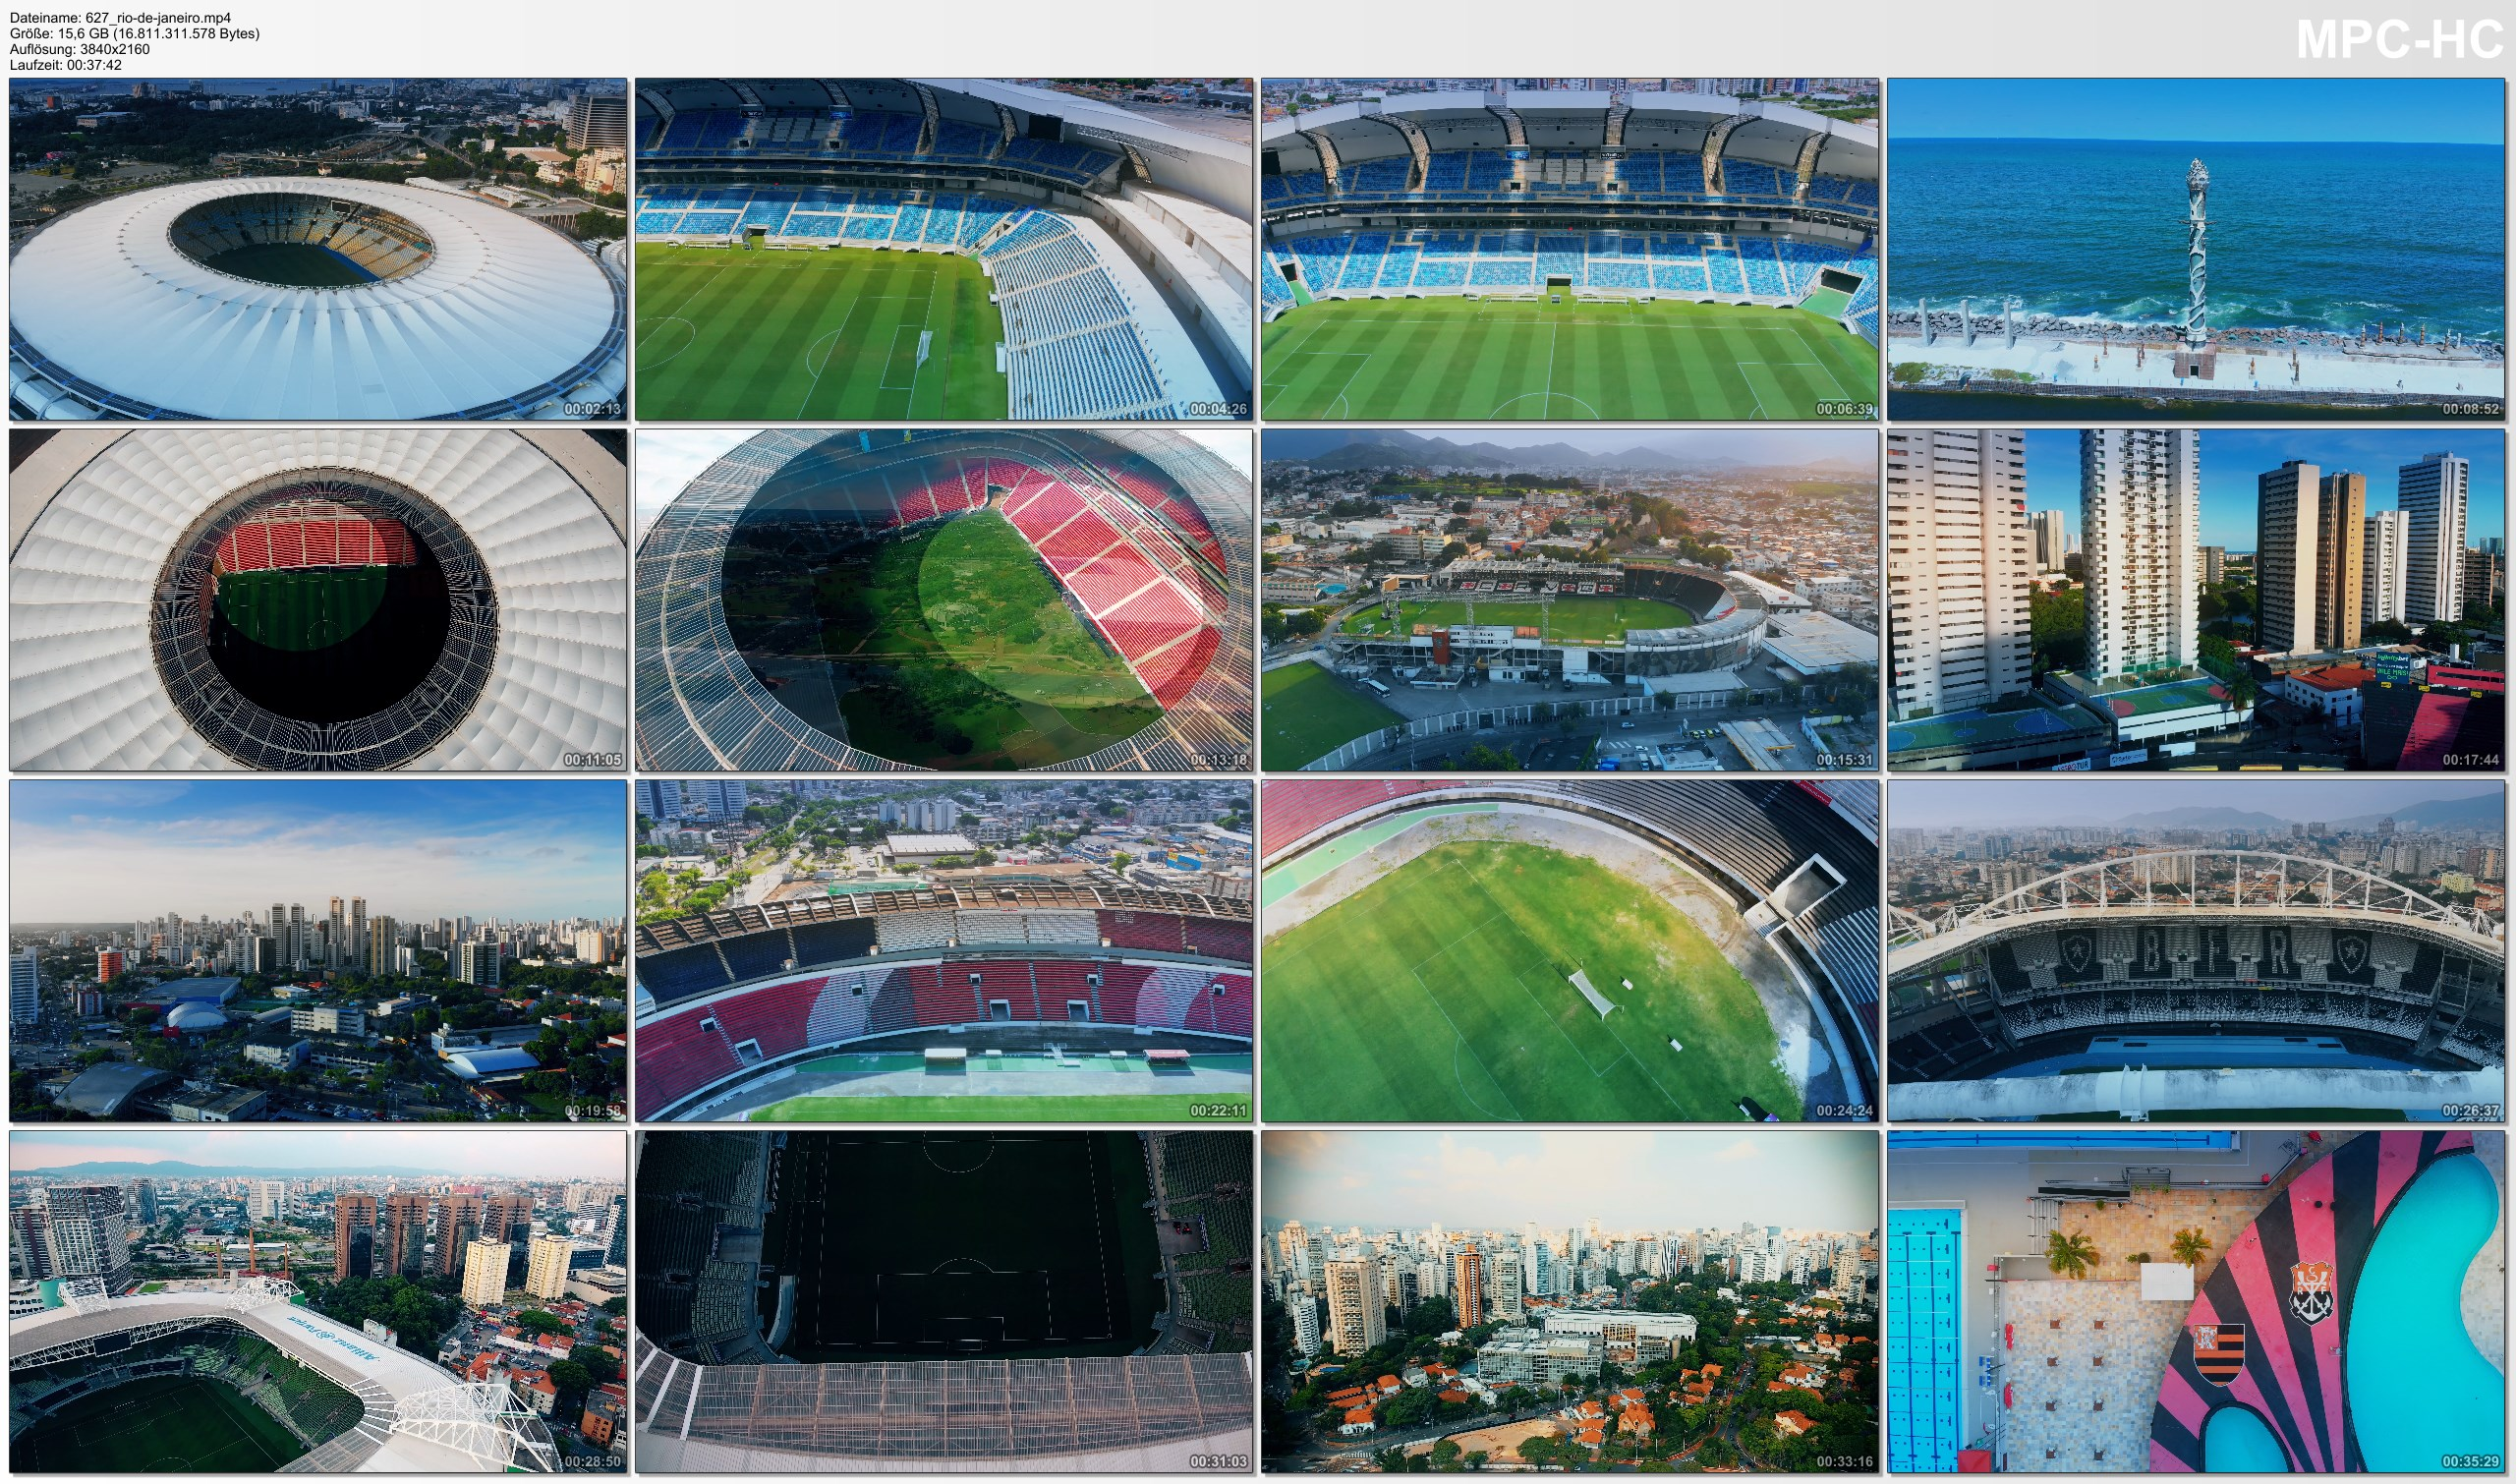 Drone Pictures from Video 【4K】The Stadiums of Brazil from Above | 2020 EXTENDED | Cinematic Wolf Aerial™ Drone